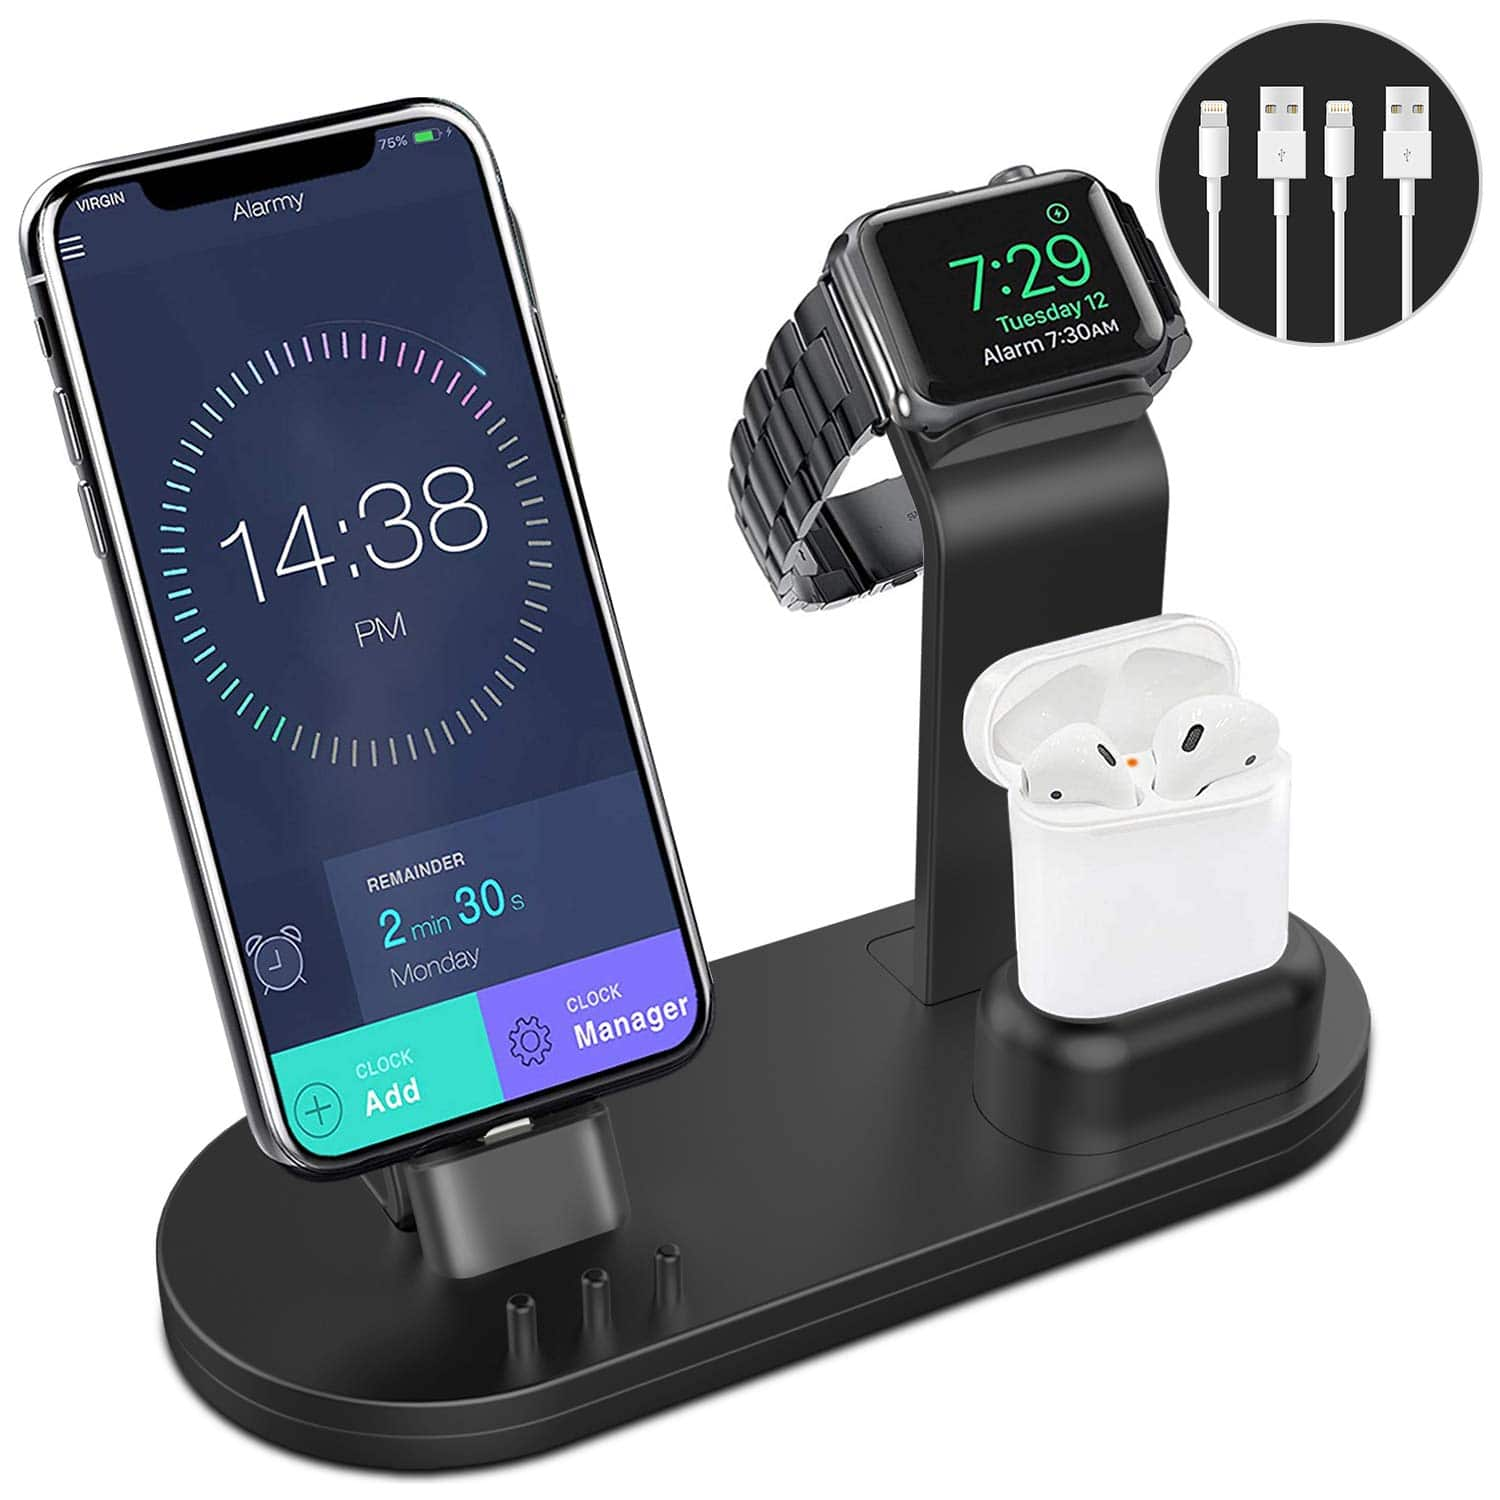 OLEBR 3 in 1 Charging Stand for iWatch, AirPods, and iPhone $19.93